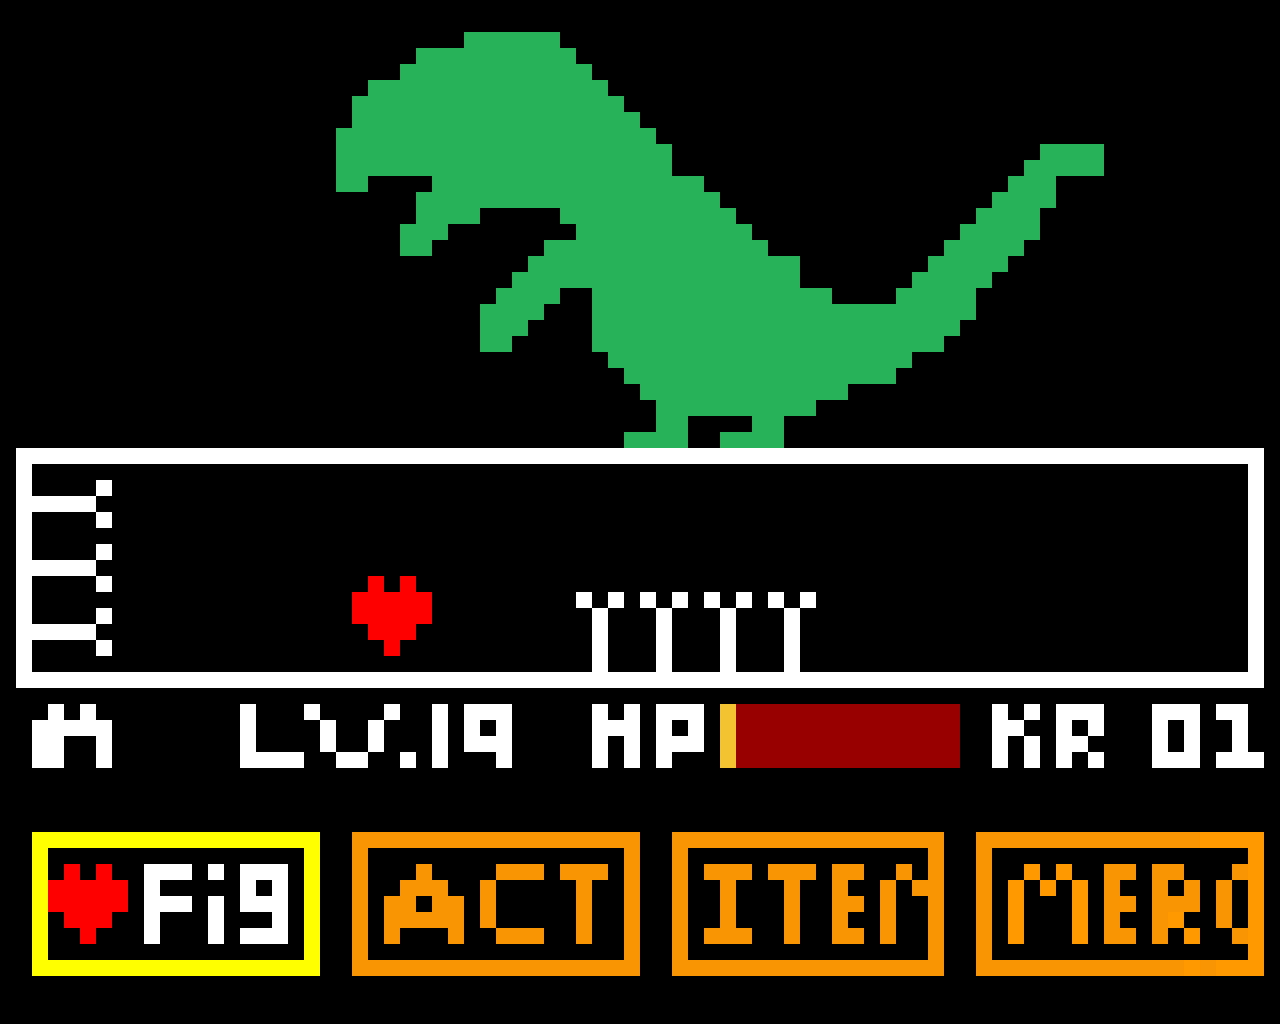 UnderTale (dino_pixel boss)   make a fan boss if you want